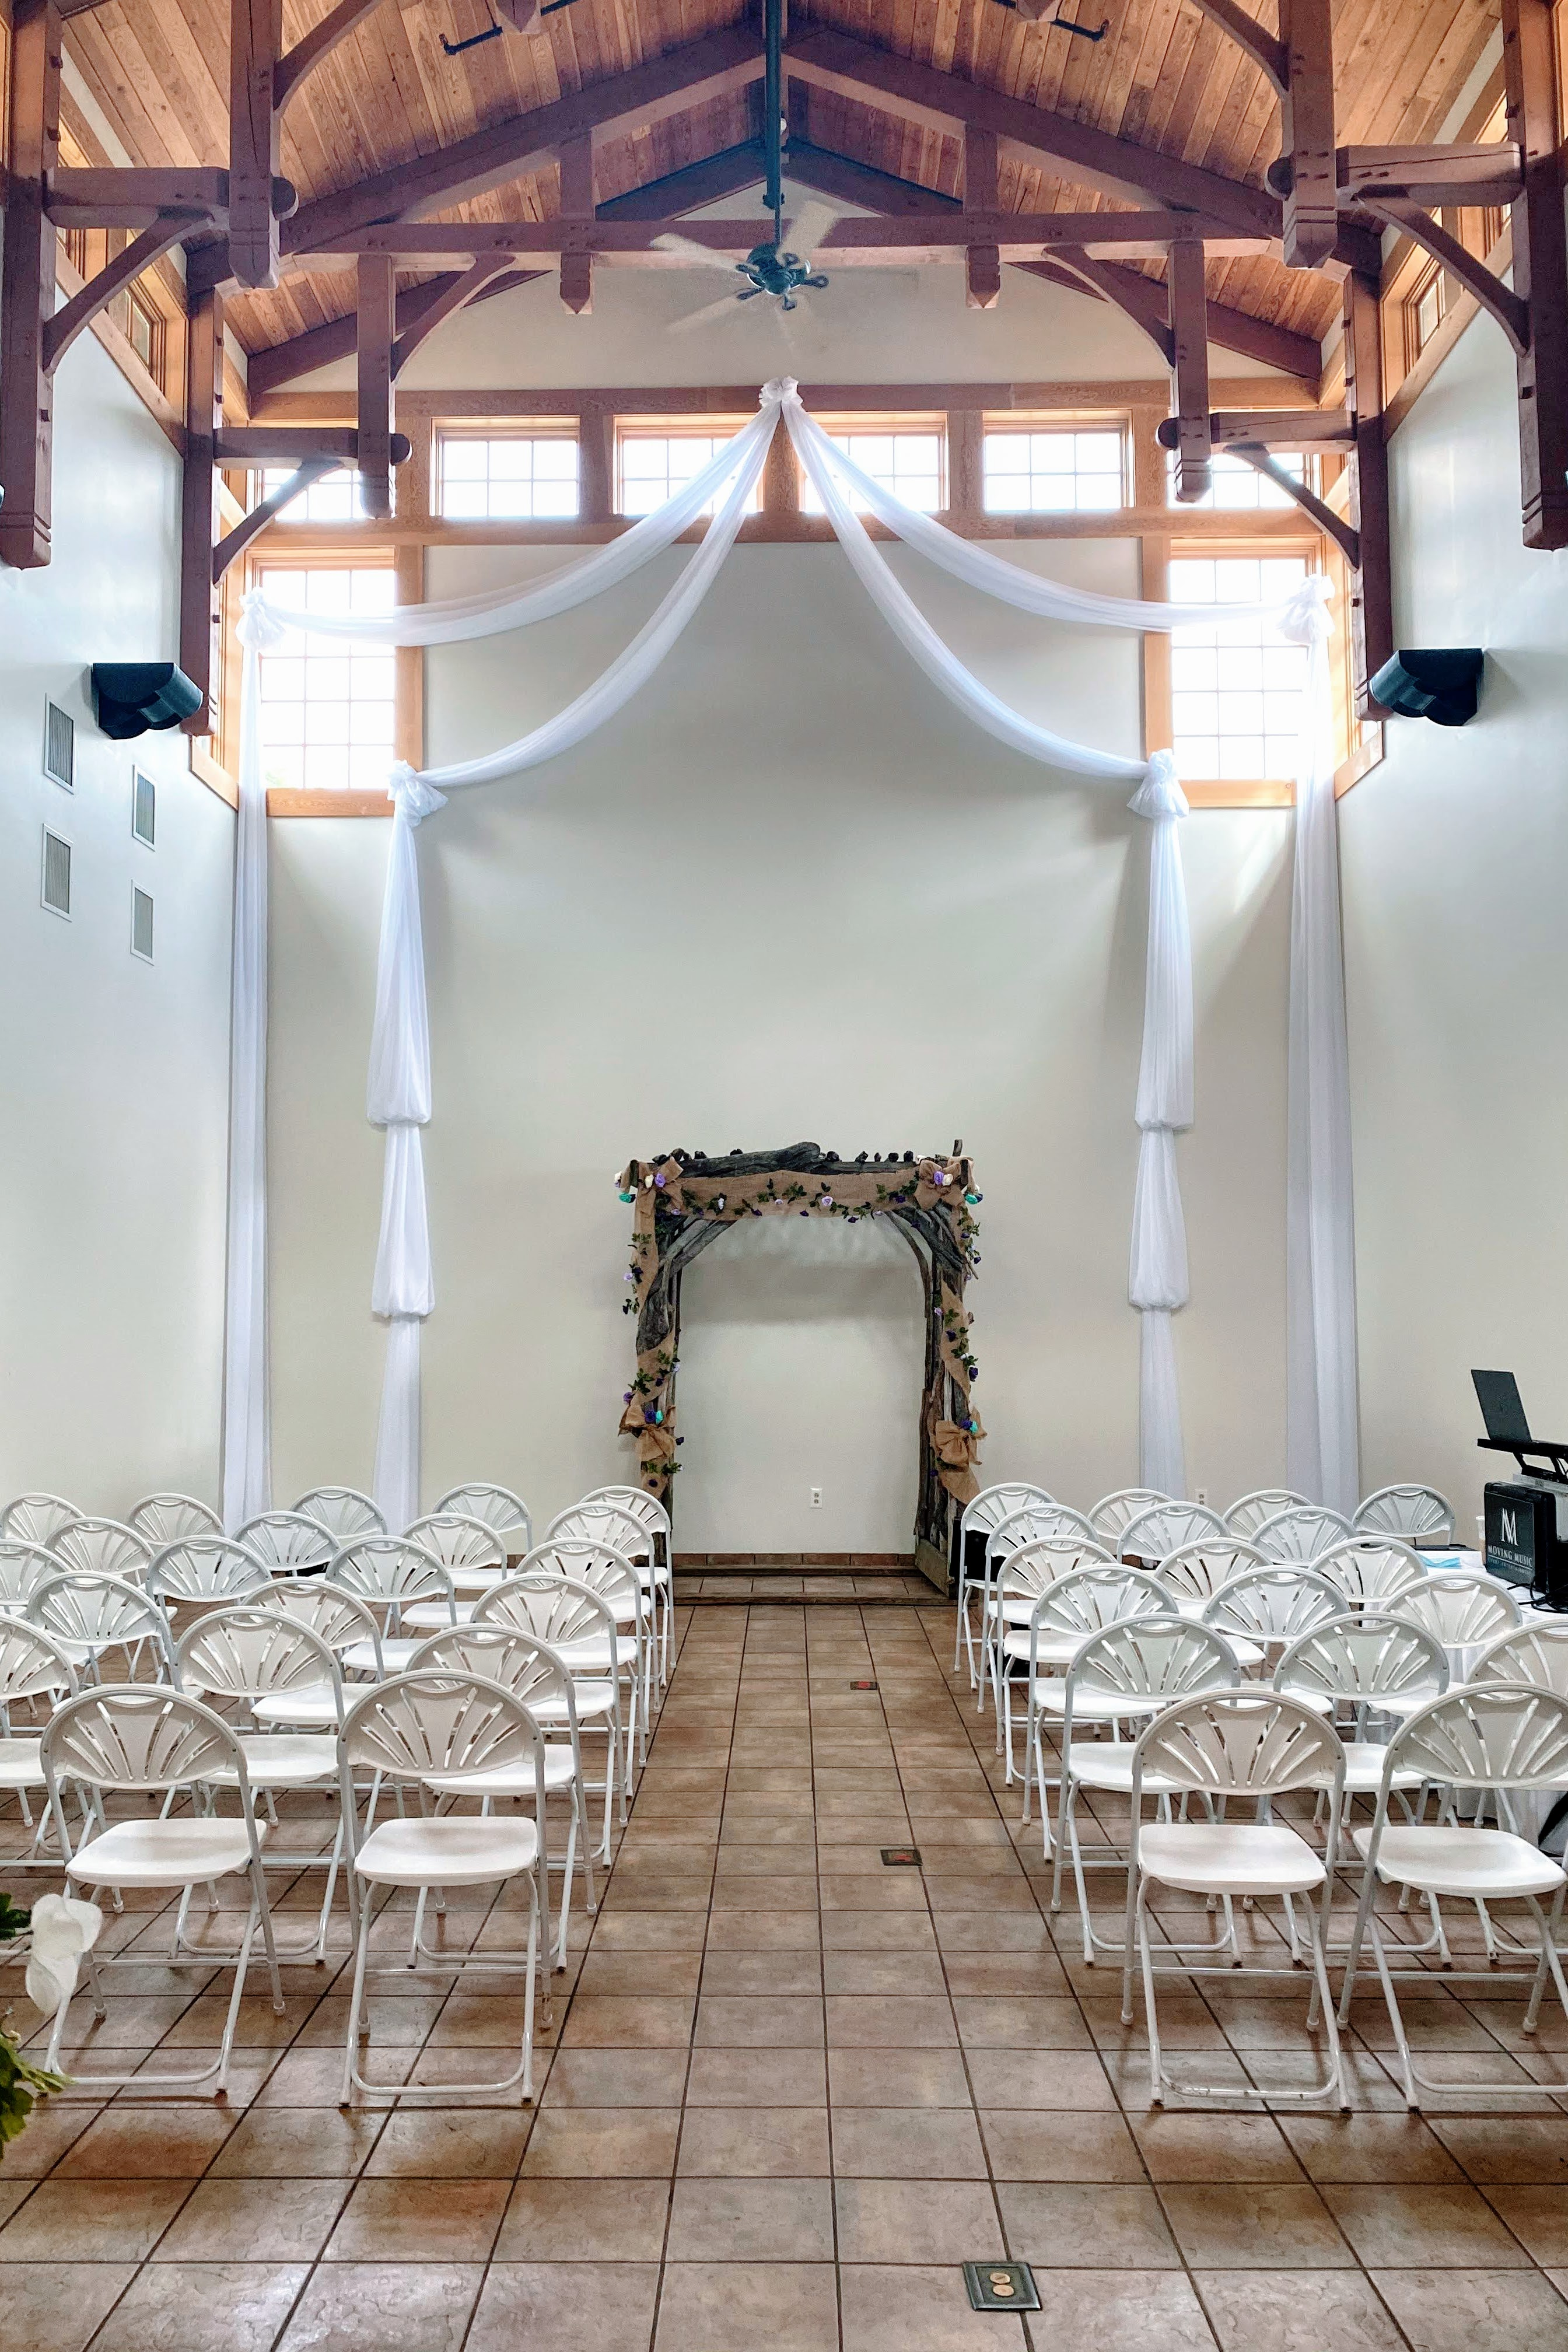 A venue perfect for any event